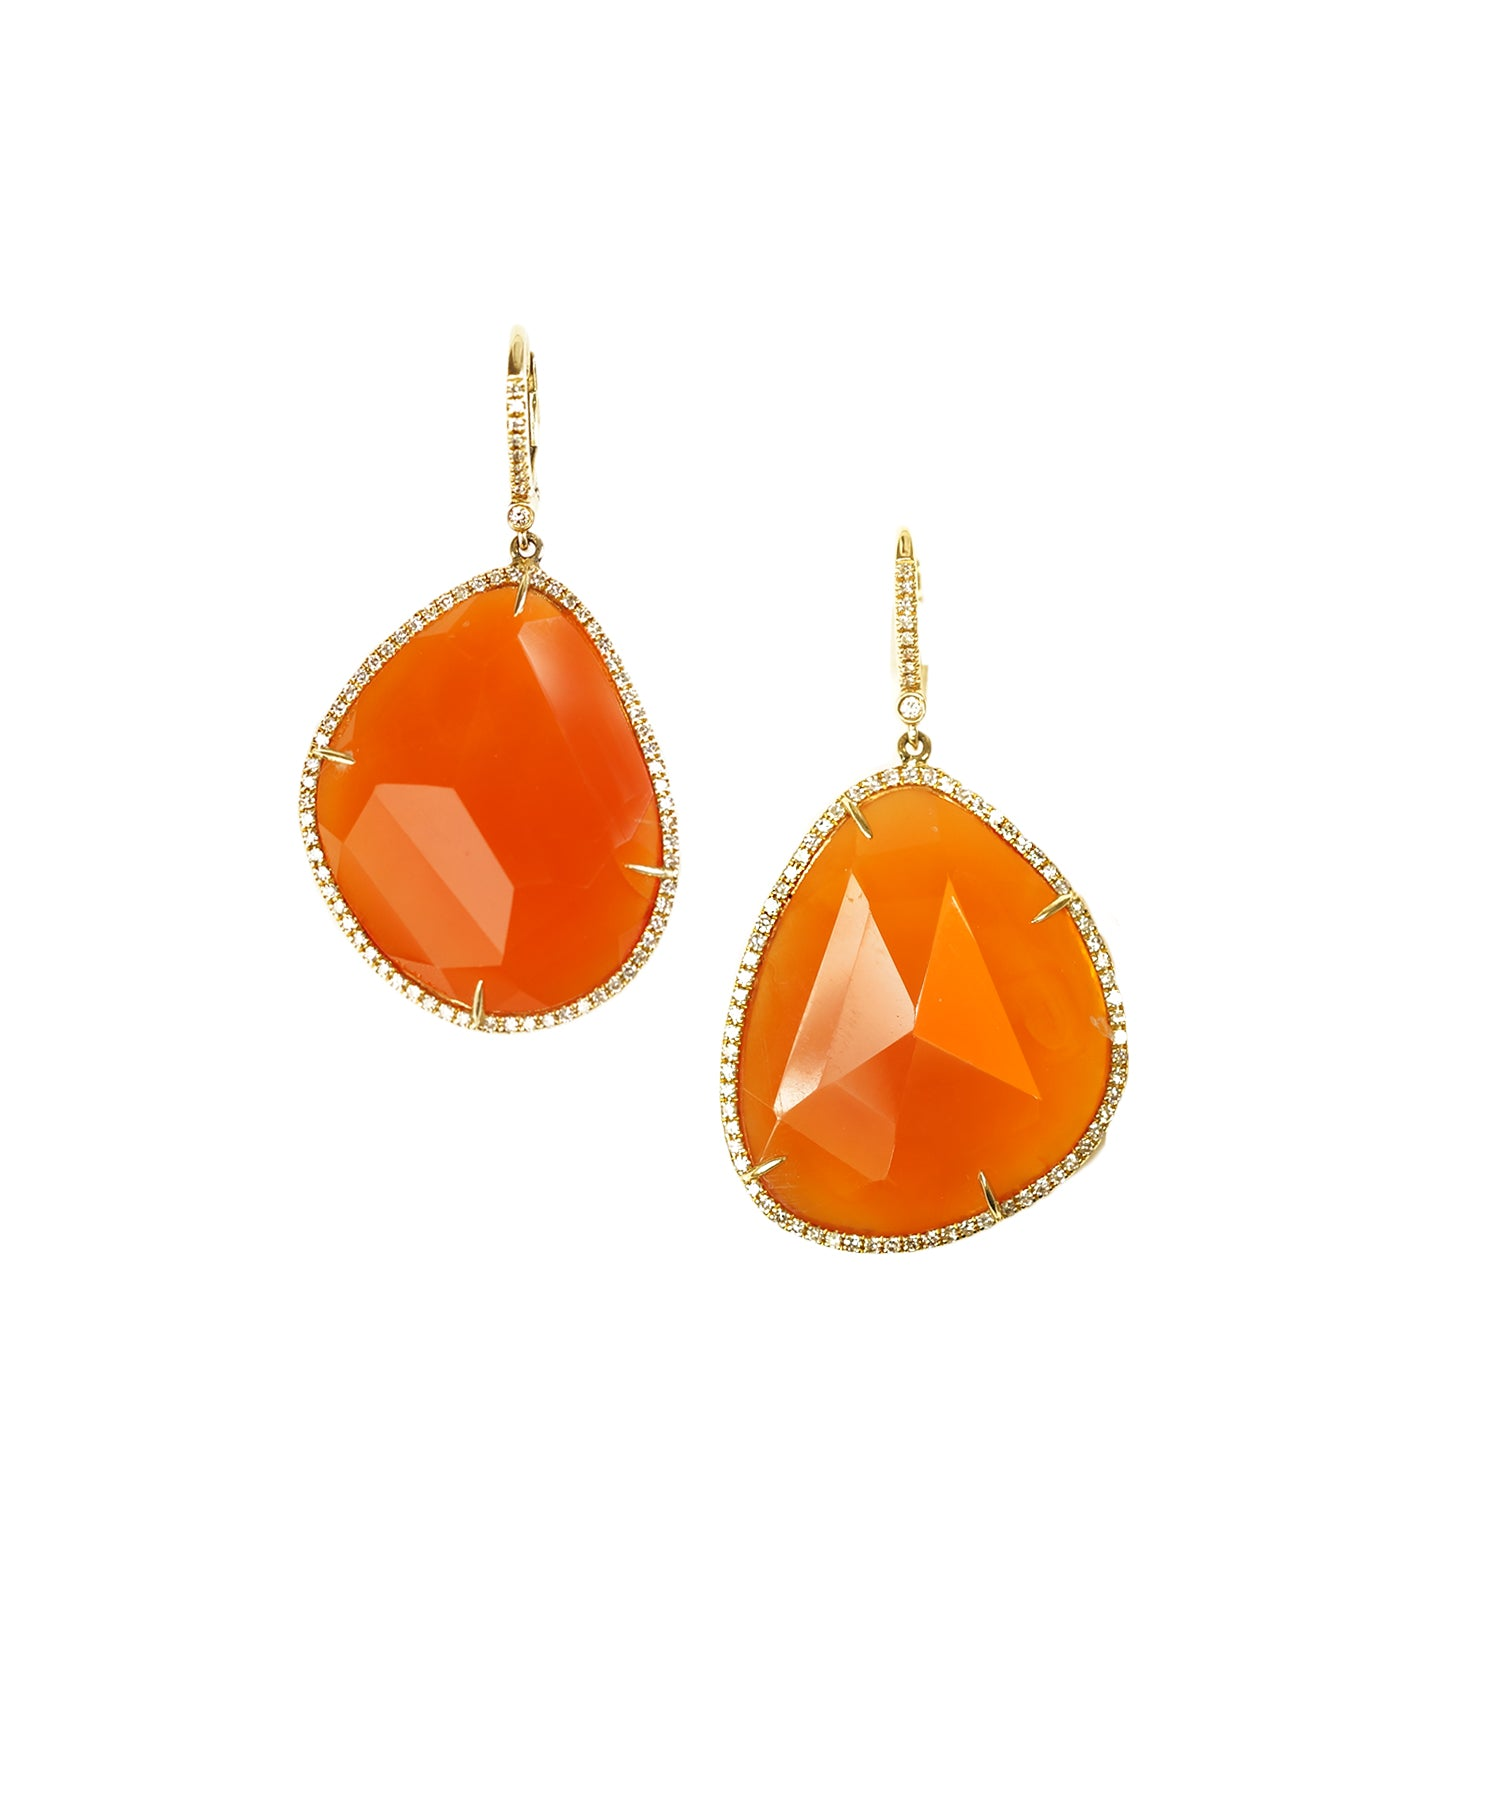 wolf us light carnelian alberta earrings image orange alexandra khrysler